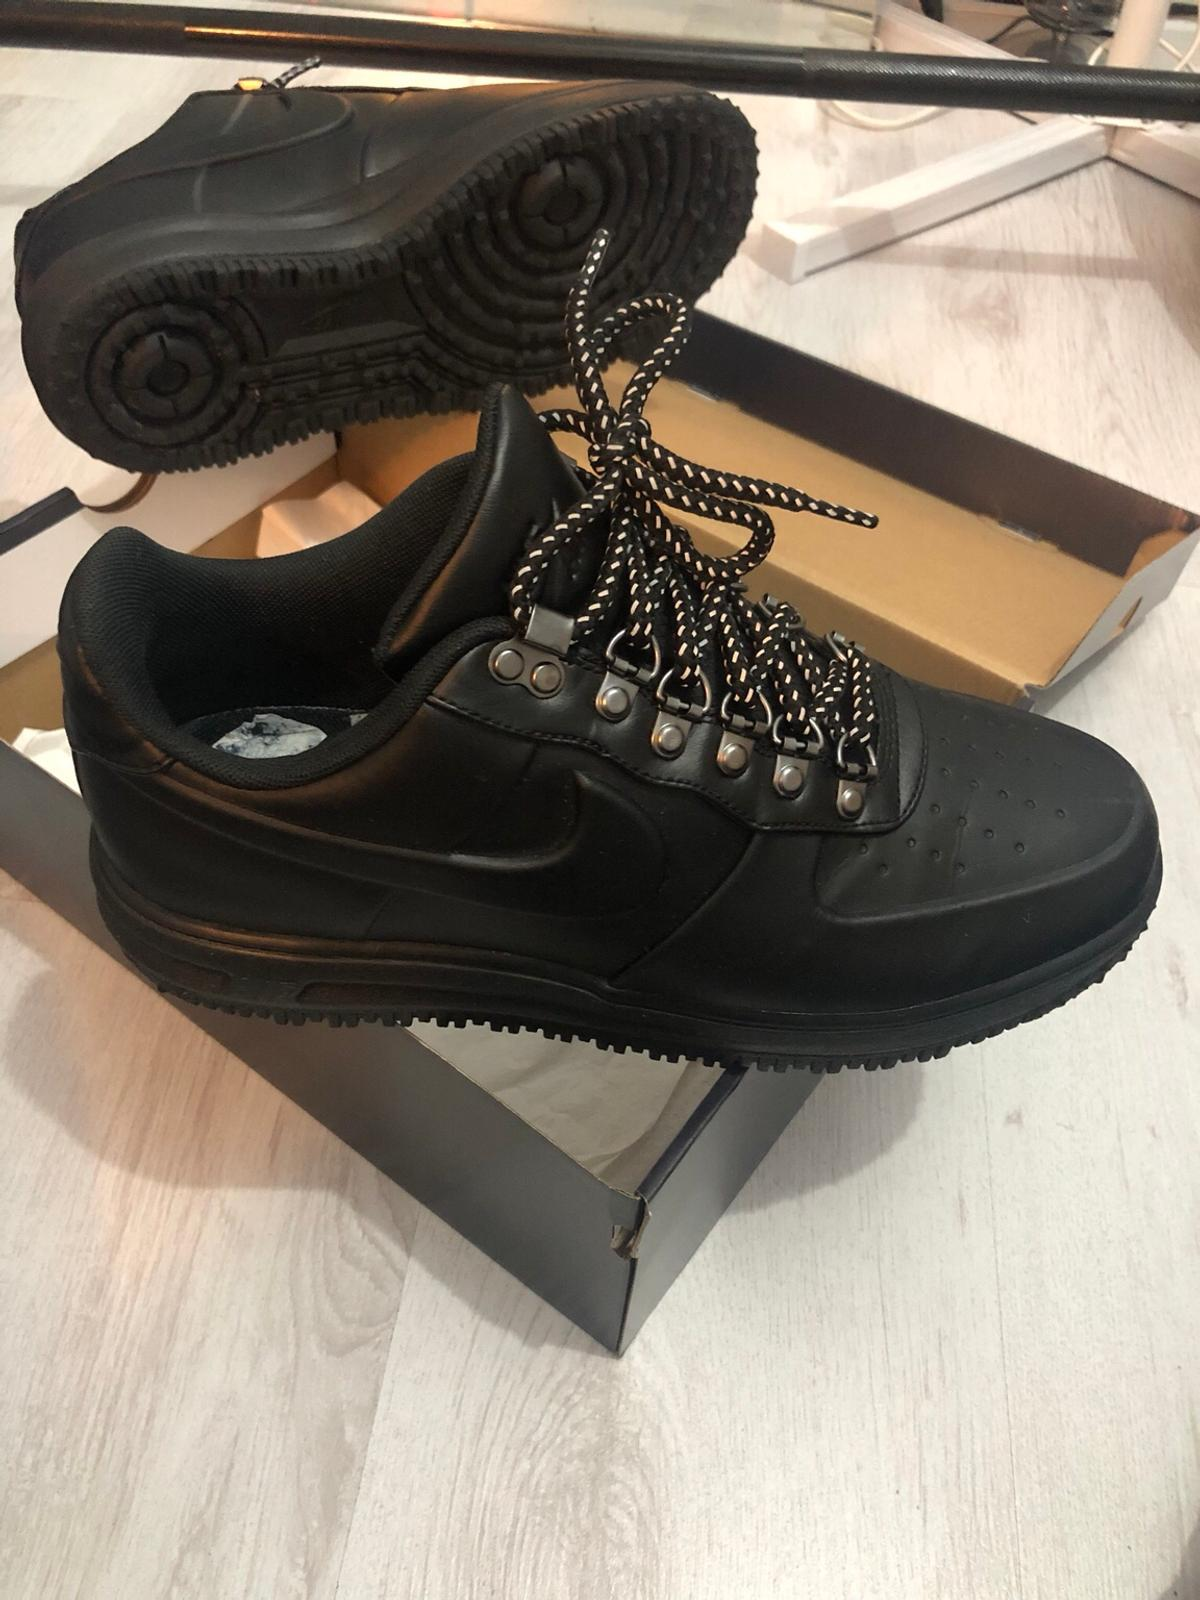 rencontrer 677b7 f605e Air force 1 duckboot low in SE16 London for £60.00 for sale ...